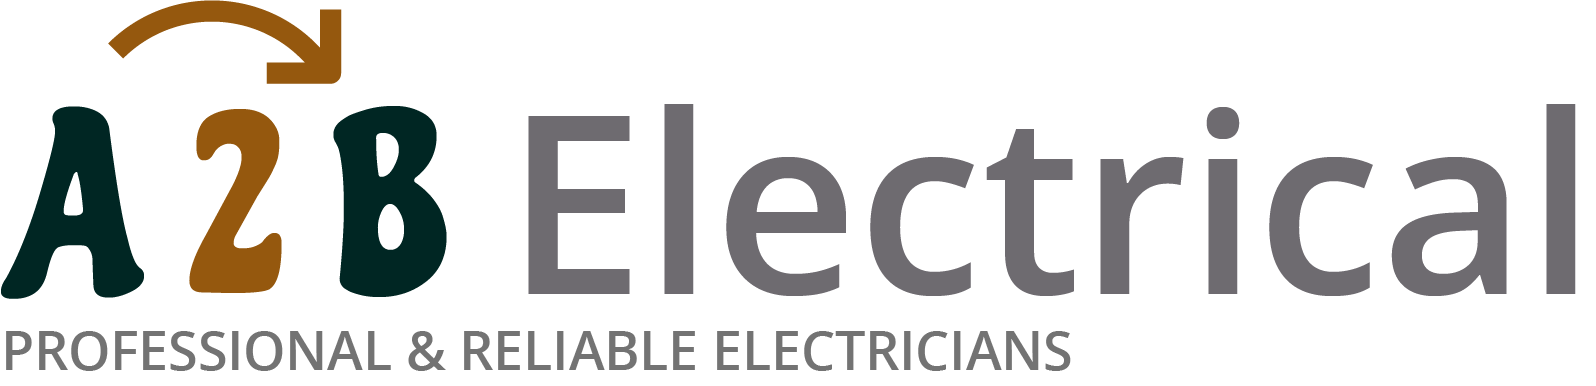 If you have electrical wiring problems in Arkley, we can provide an electrician to have a look for you.